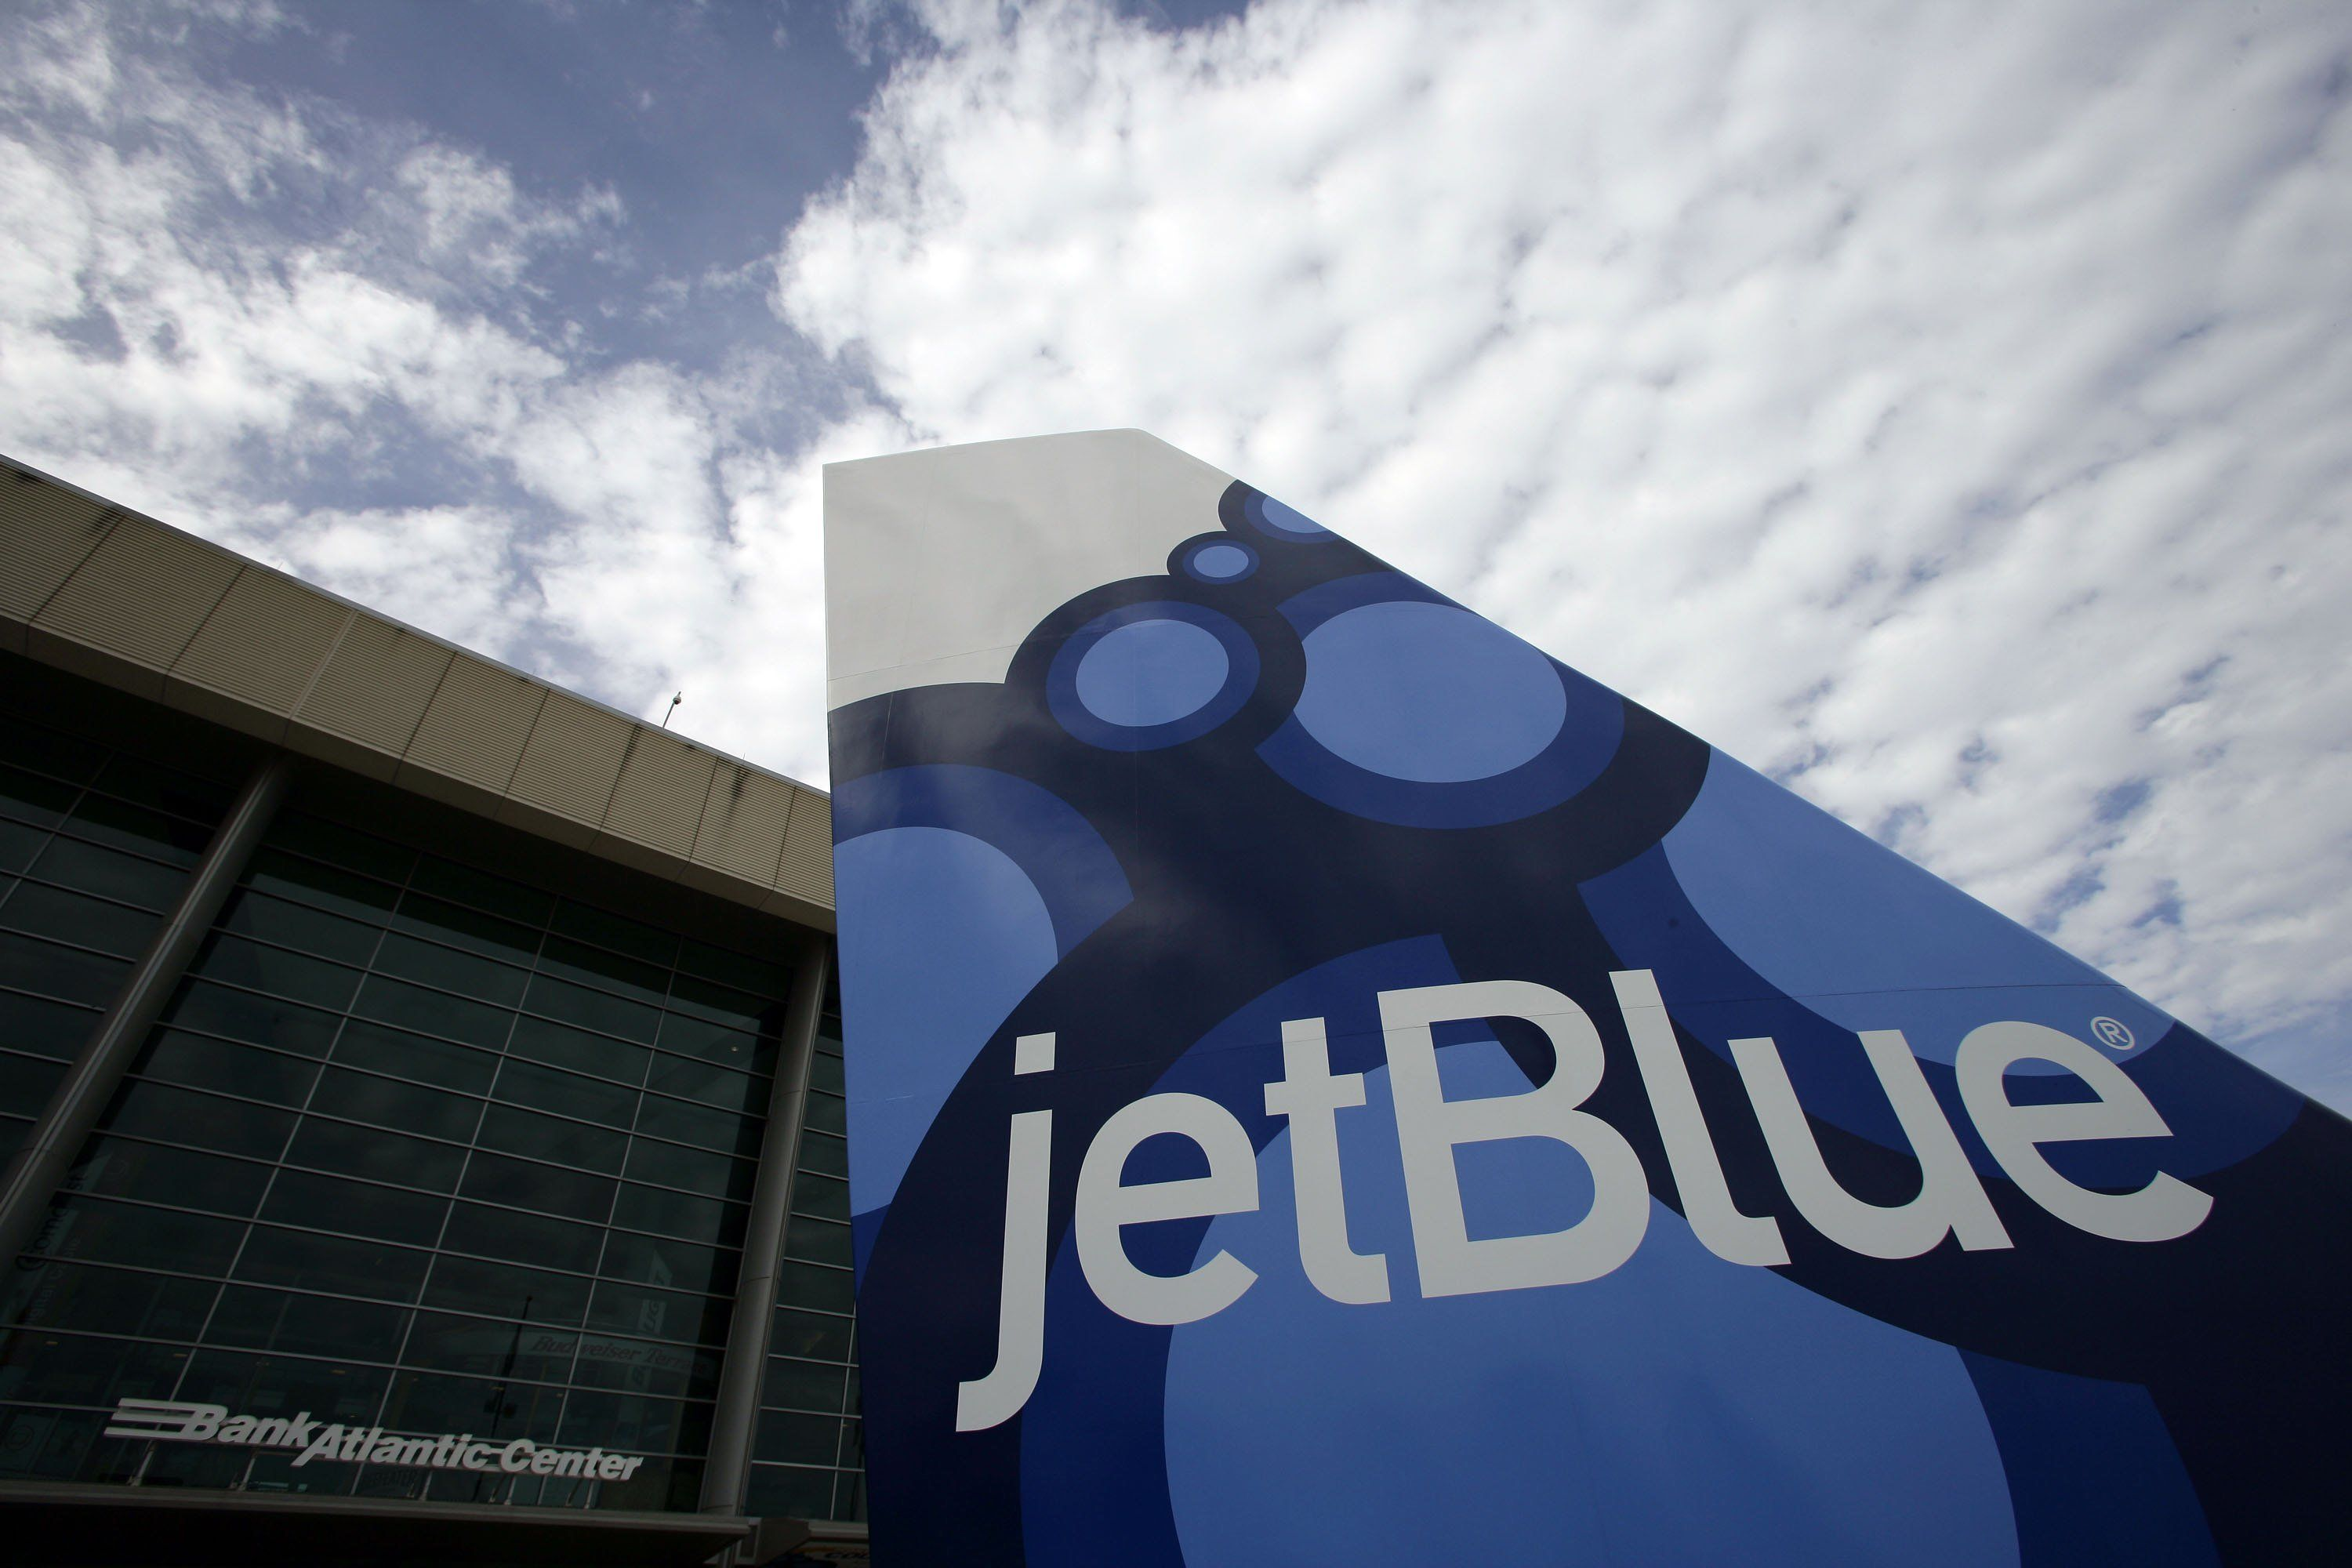 SUNRISE, FL - MARCH 16: JetBlue Airways partners with Florida Panthers and unveils a tail fin prior to the start of the game against the Washington Capitals at the BankAtlantic Center on March 16, 2010 in Sunrise, Florida. (Photo by Eliot J. Schechter/NHLI via Getty Images)